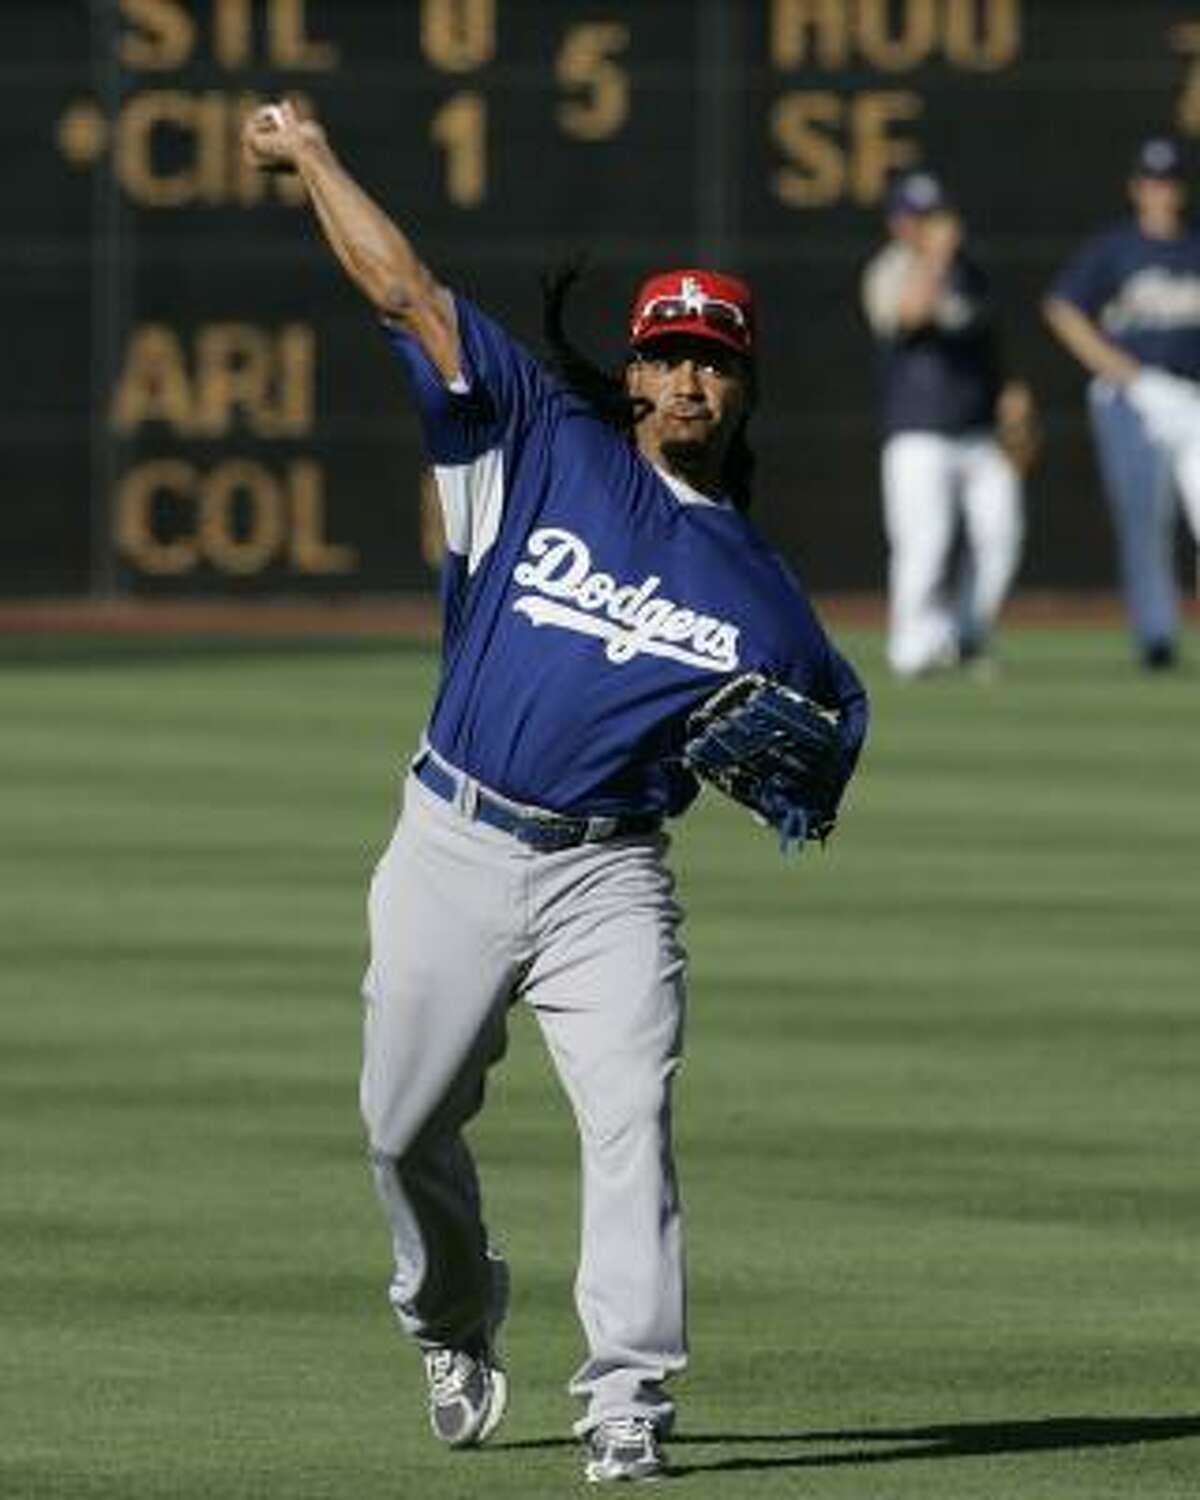 Dodgers left fielder Manny Ramirez warms up for his first Major League game after serving a 50-game suspension.